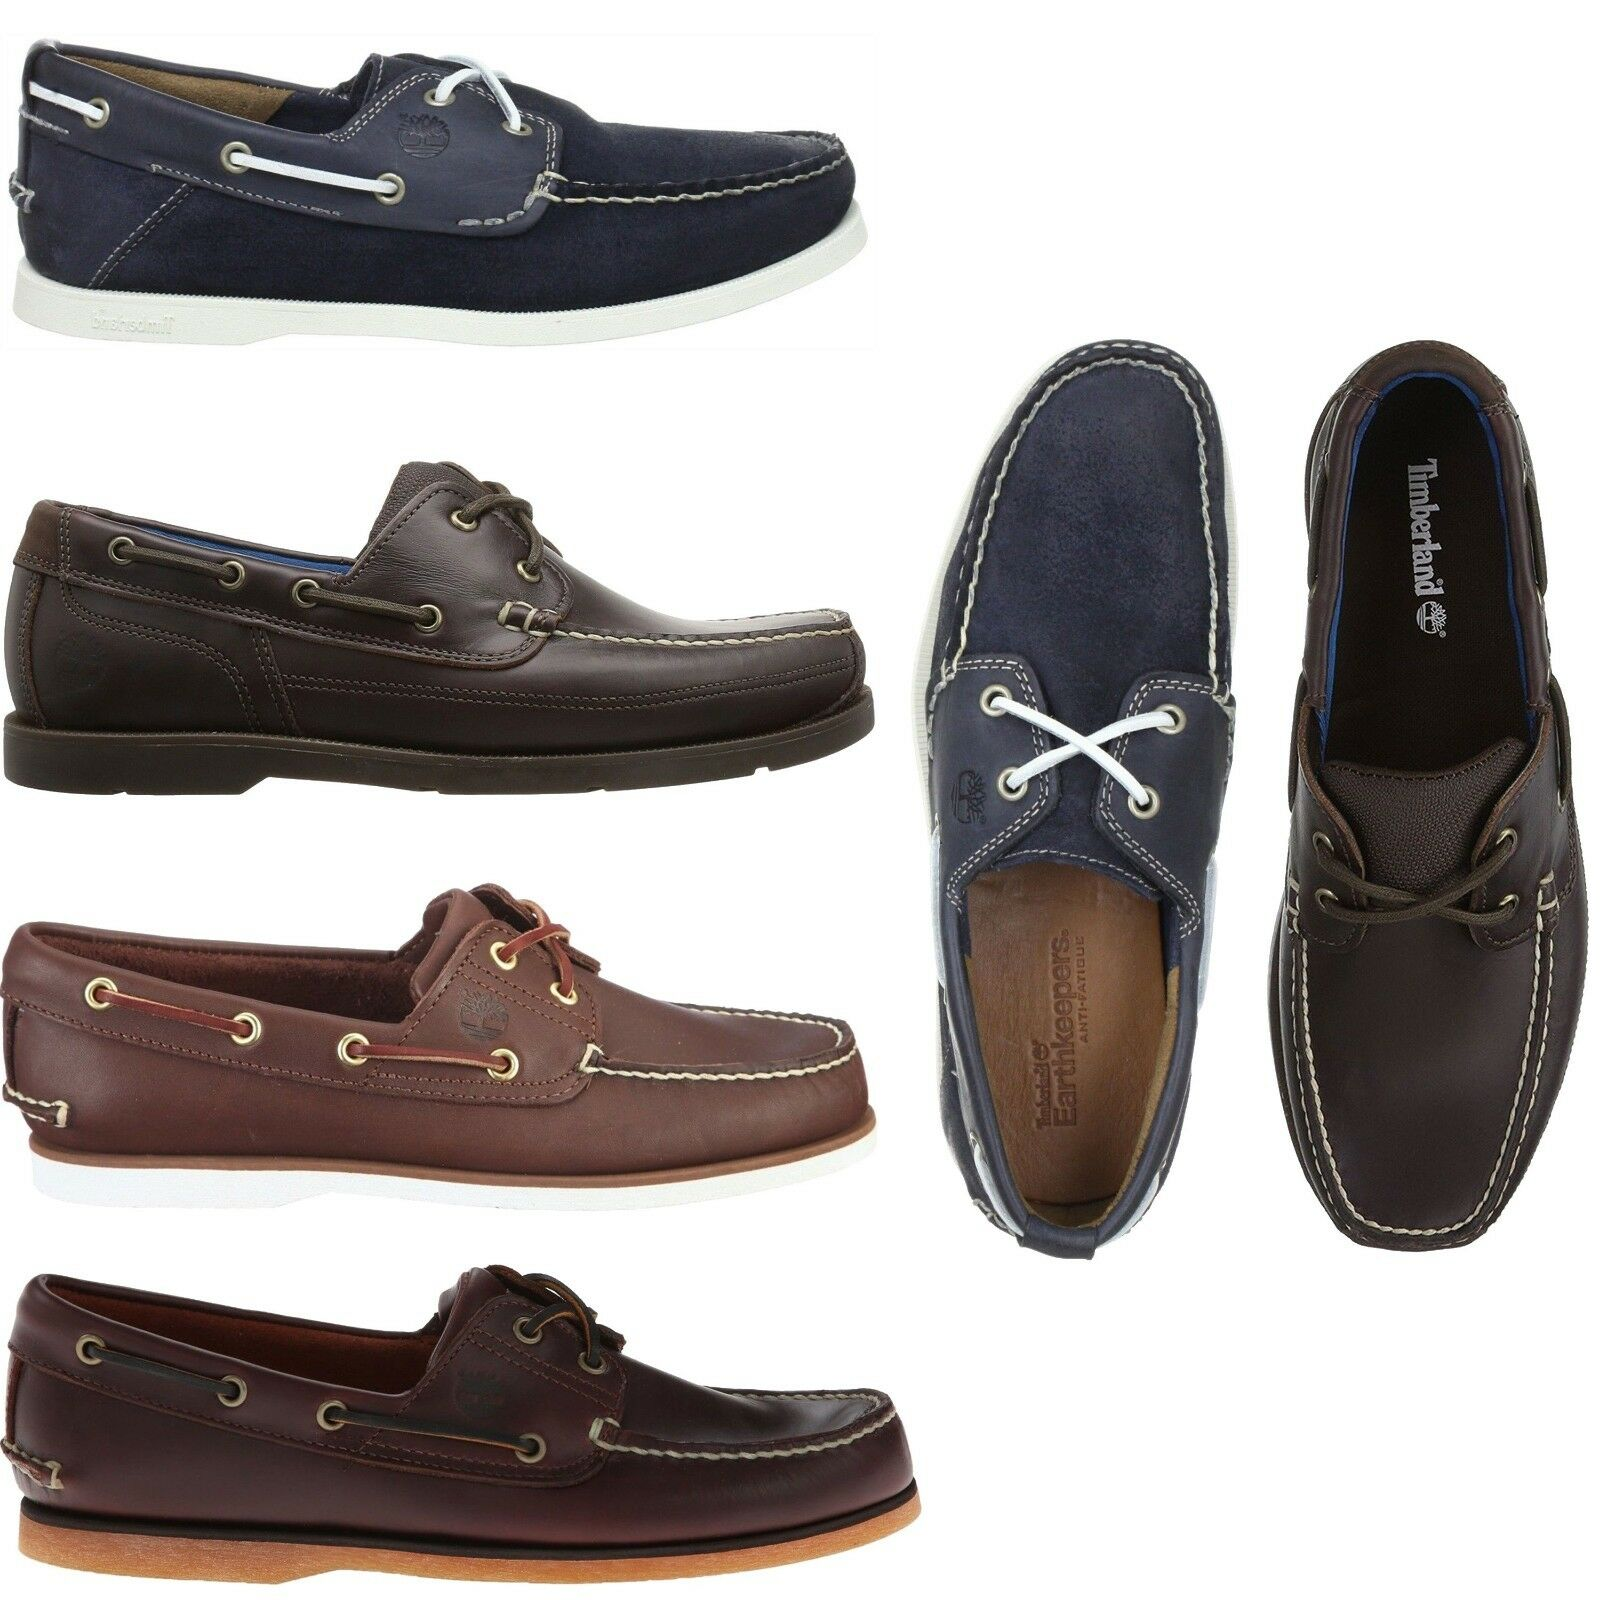 Timberland Men's Classic 2 Eye Boat Shoes Casual Slip On Leather Loafers NEW